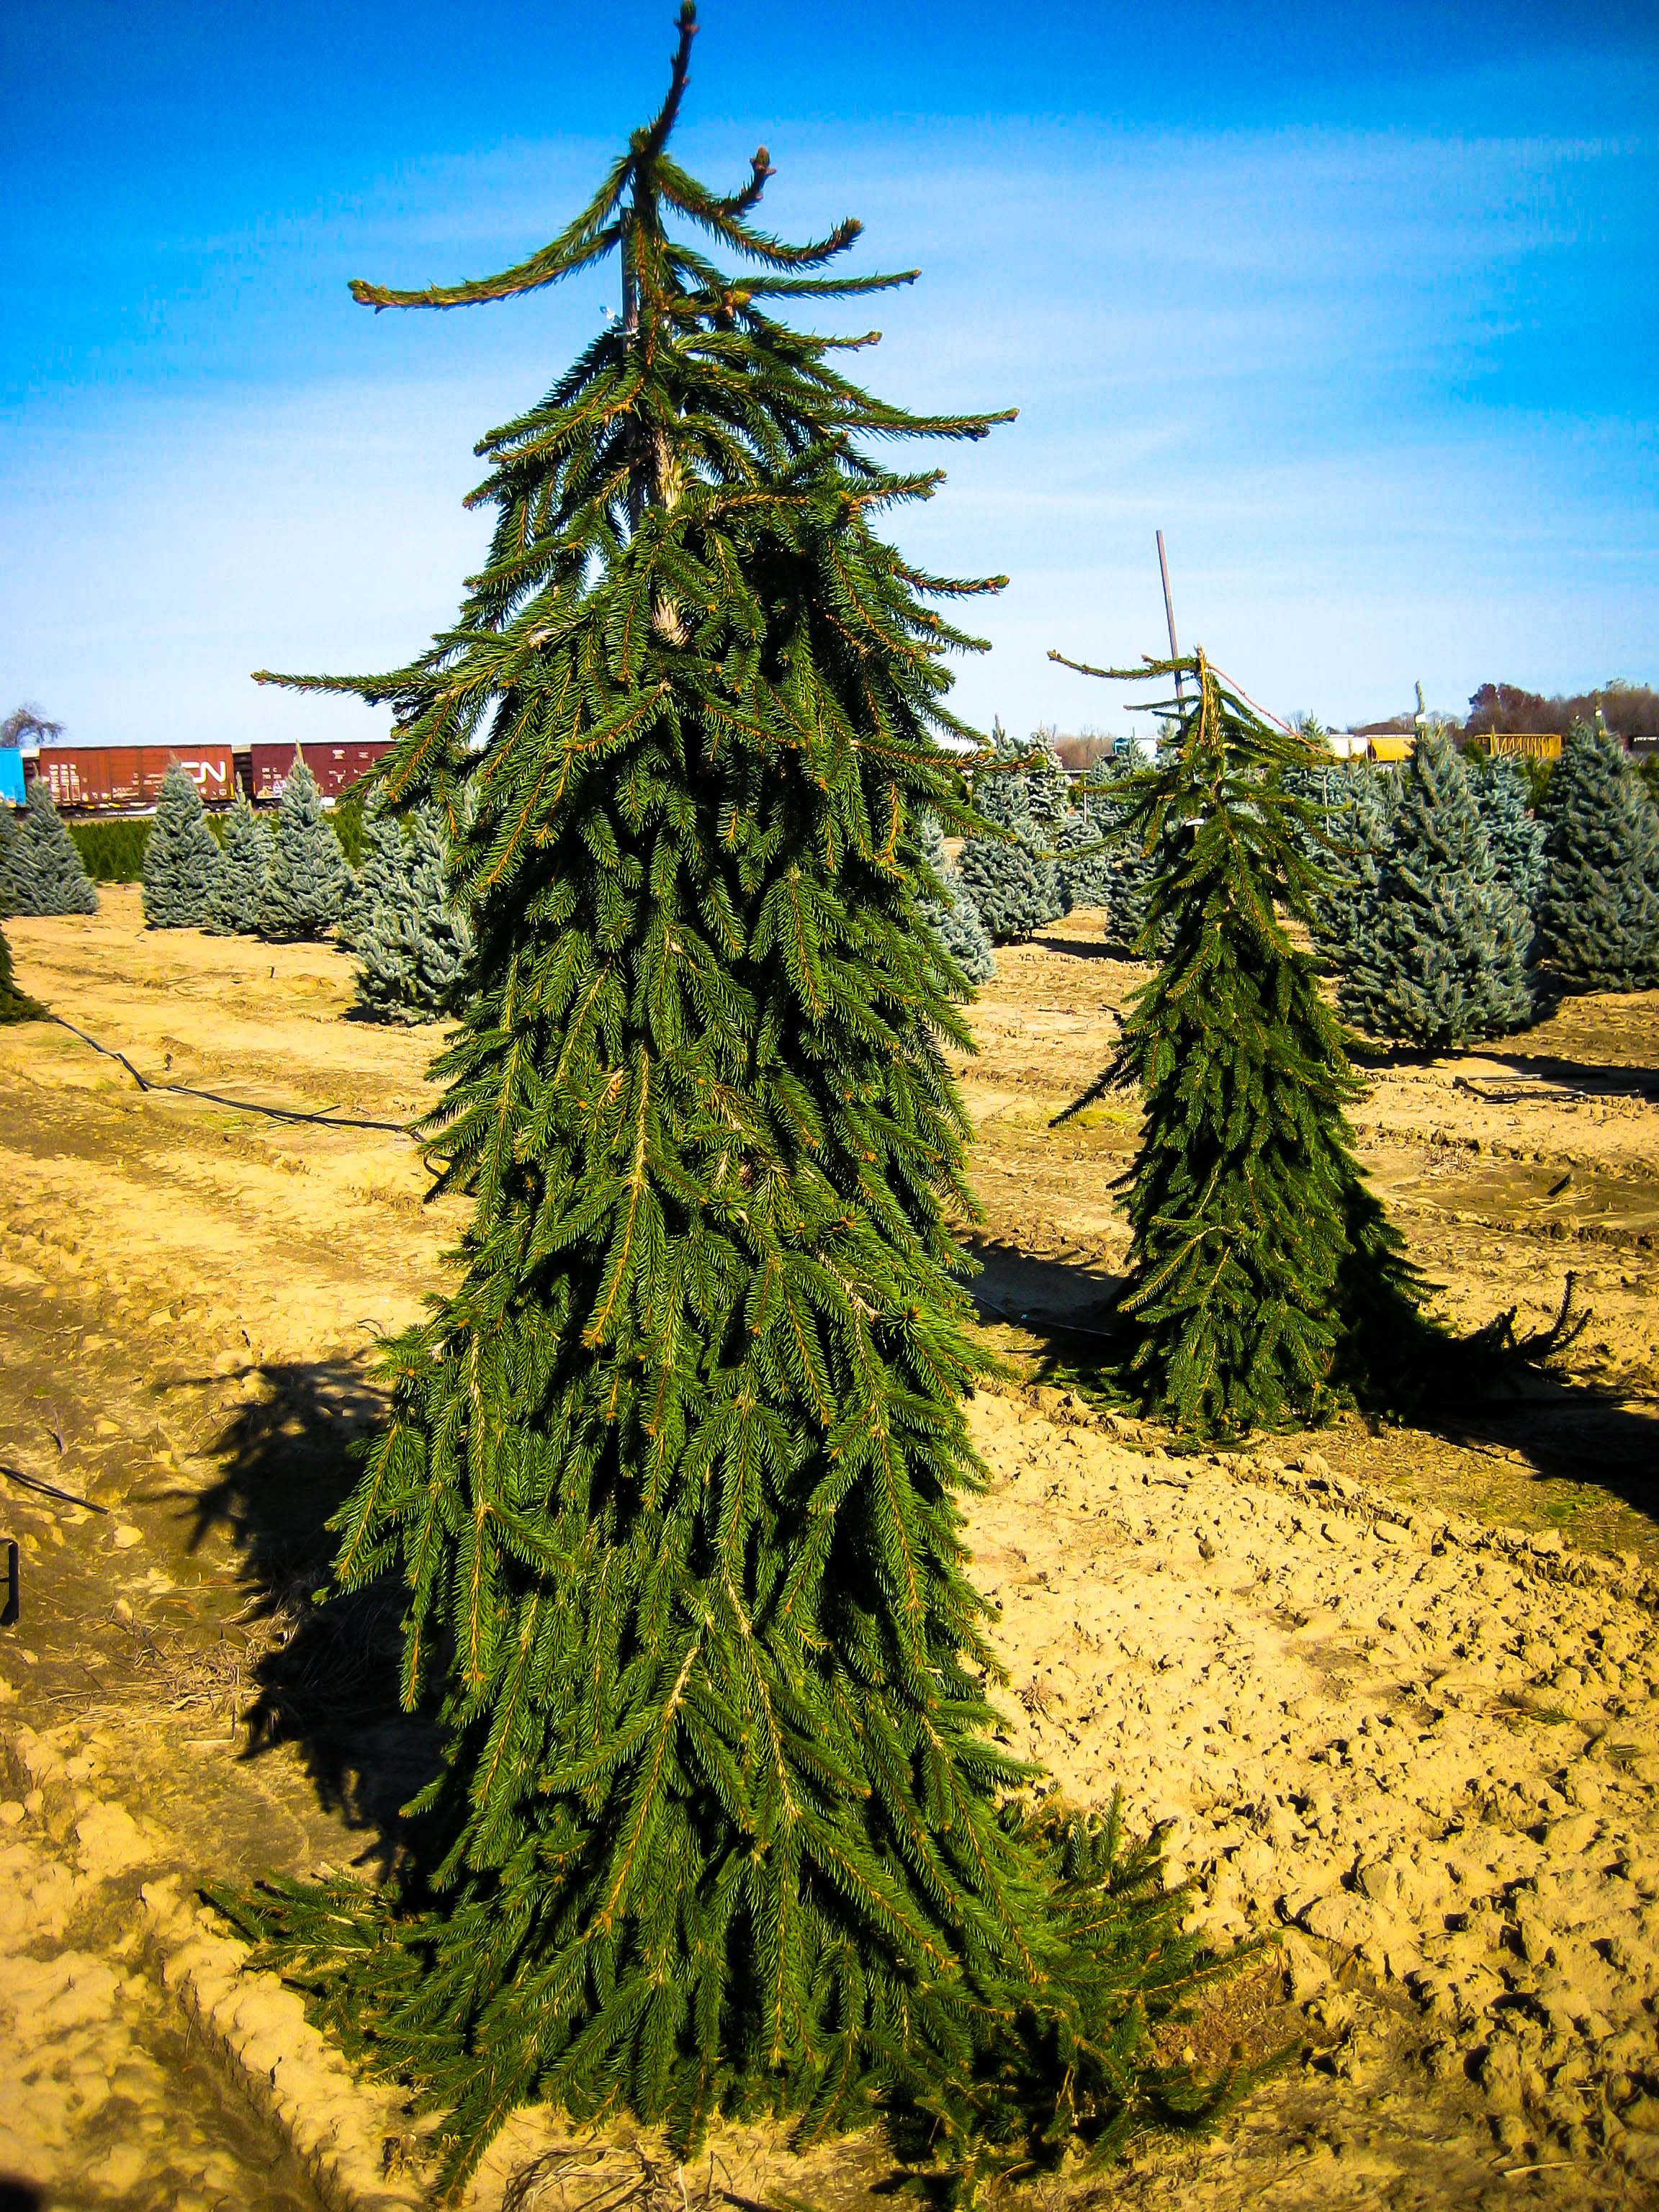 Divine Sale Online Tree Center Baby Blue S Spruce Cost Baby Blue S Spruce Nj Plant Weeping Norway Spruce houzz-02 Baby Blue Eyes Spruce